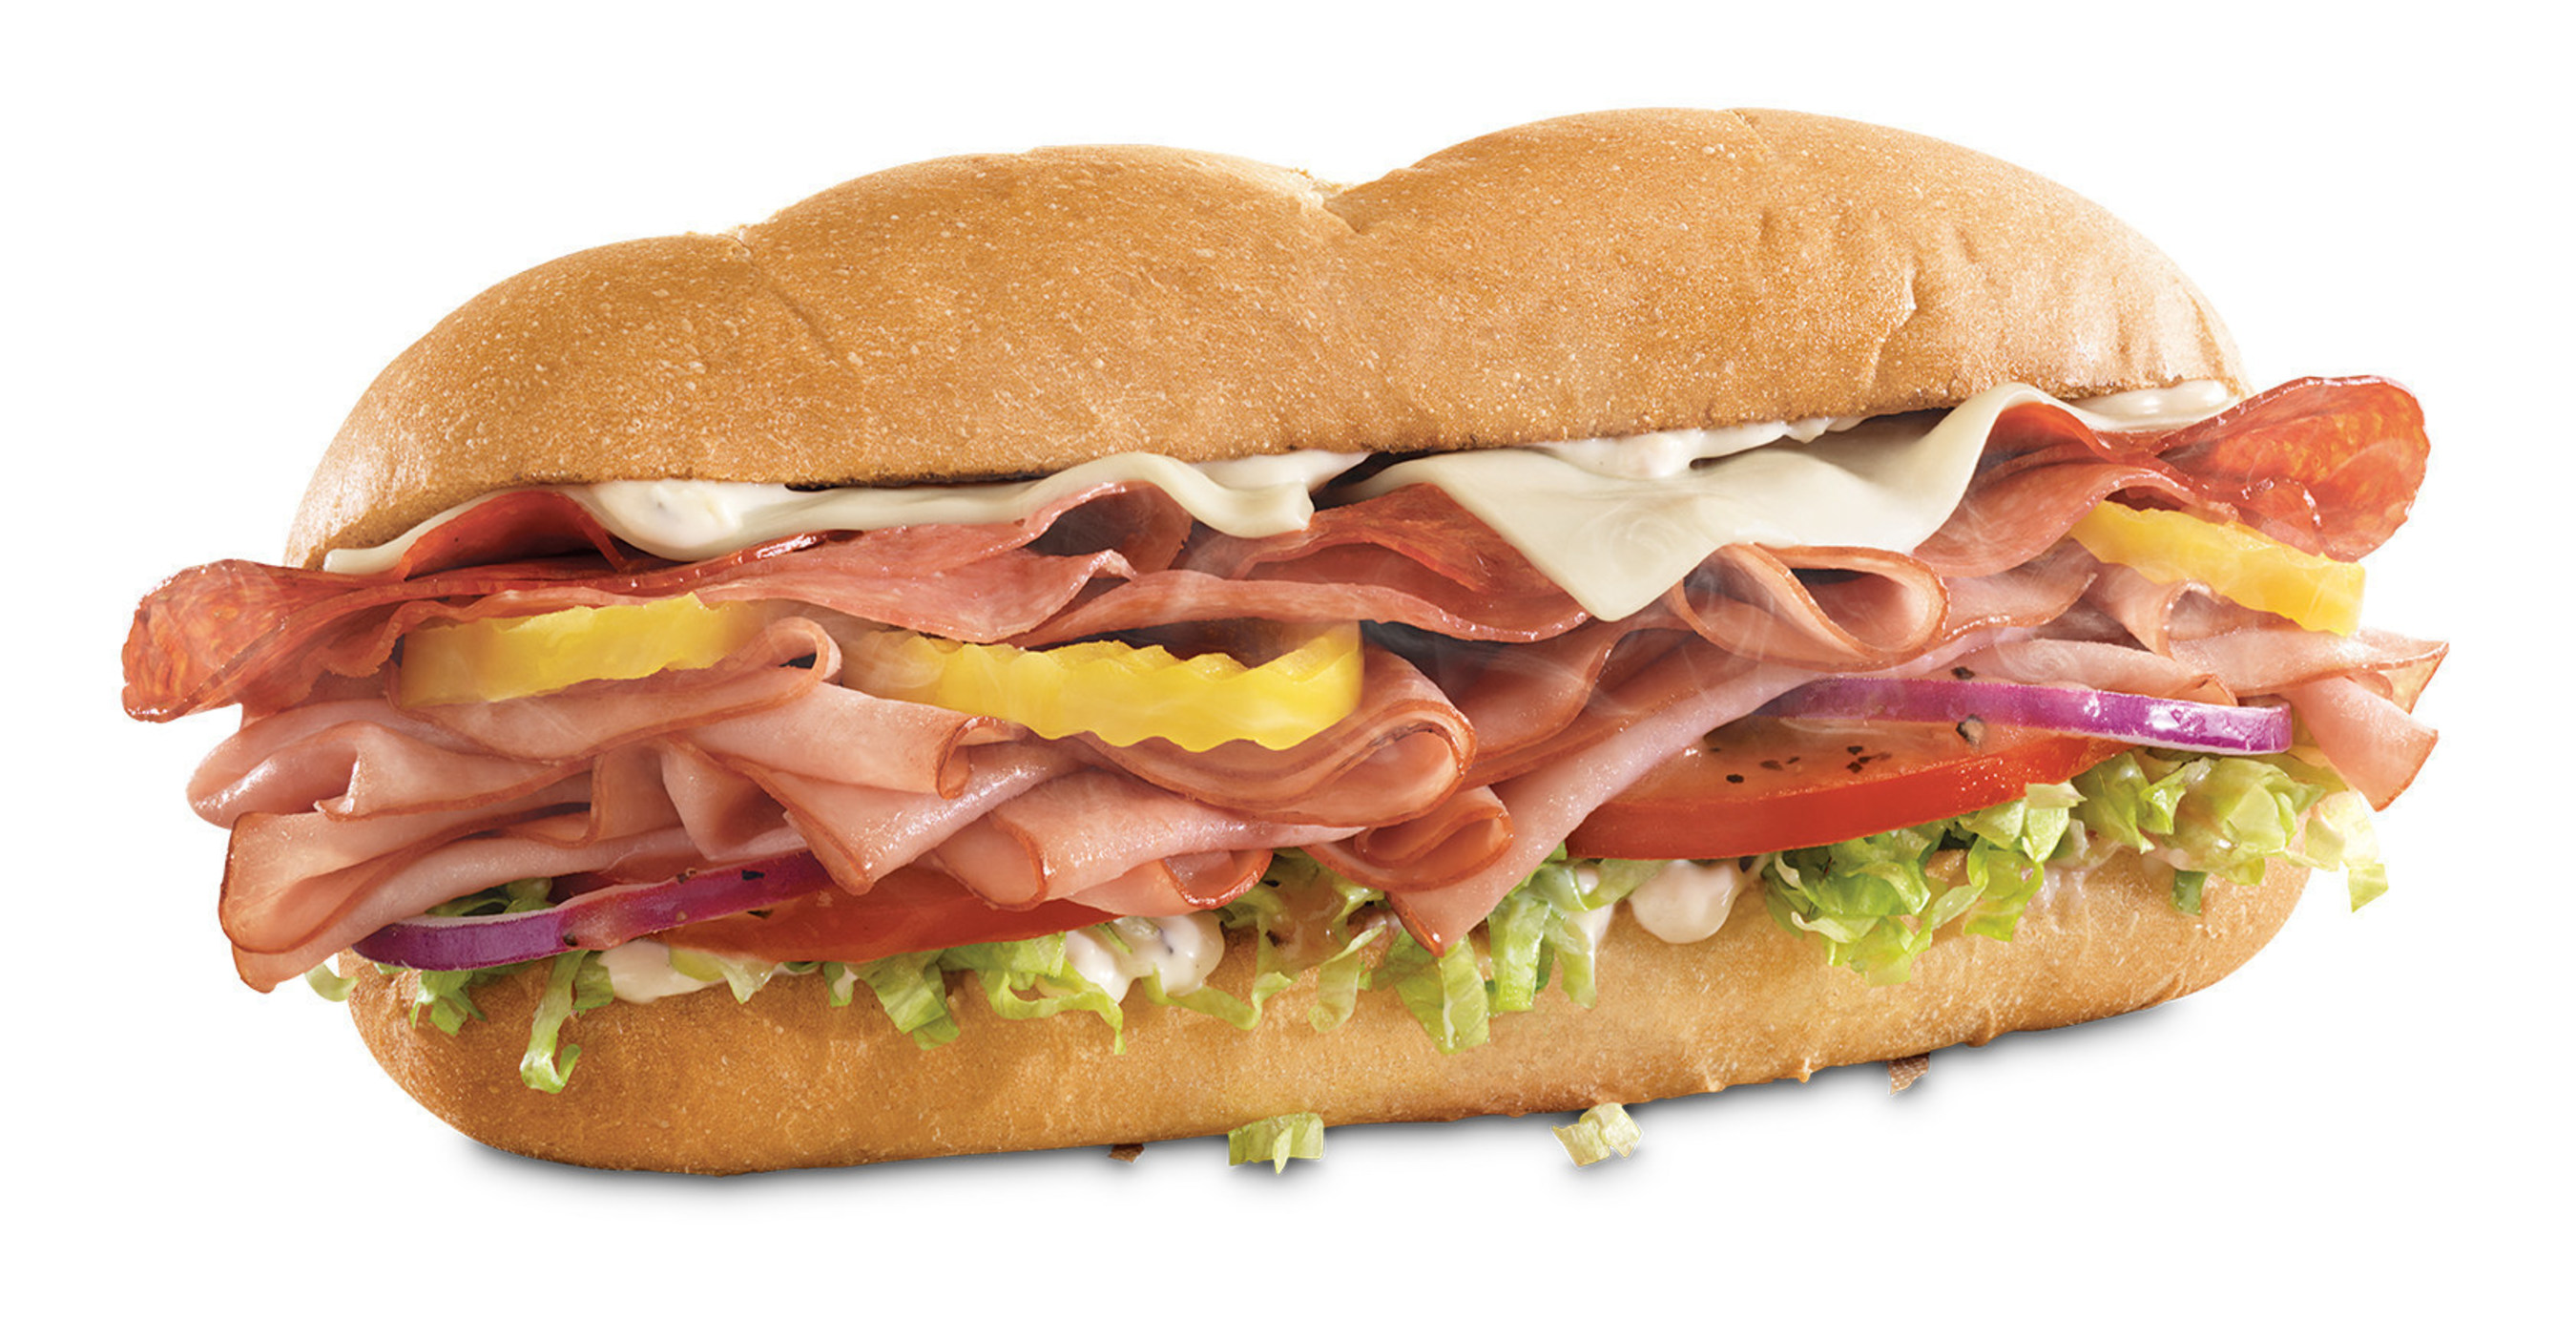 Arby's new Loaded Italian Sandwich featuring thinly-sliced ham, salami and pepperoni with melted cheese, banana peppers, shredded lettuce, tomato and red onion, with red wine vinaigrette and garlic aioli on a toasted Italian style roll.